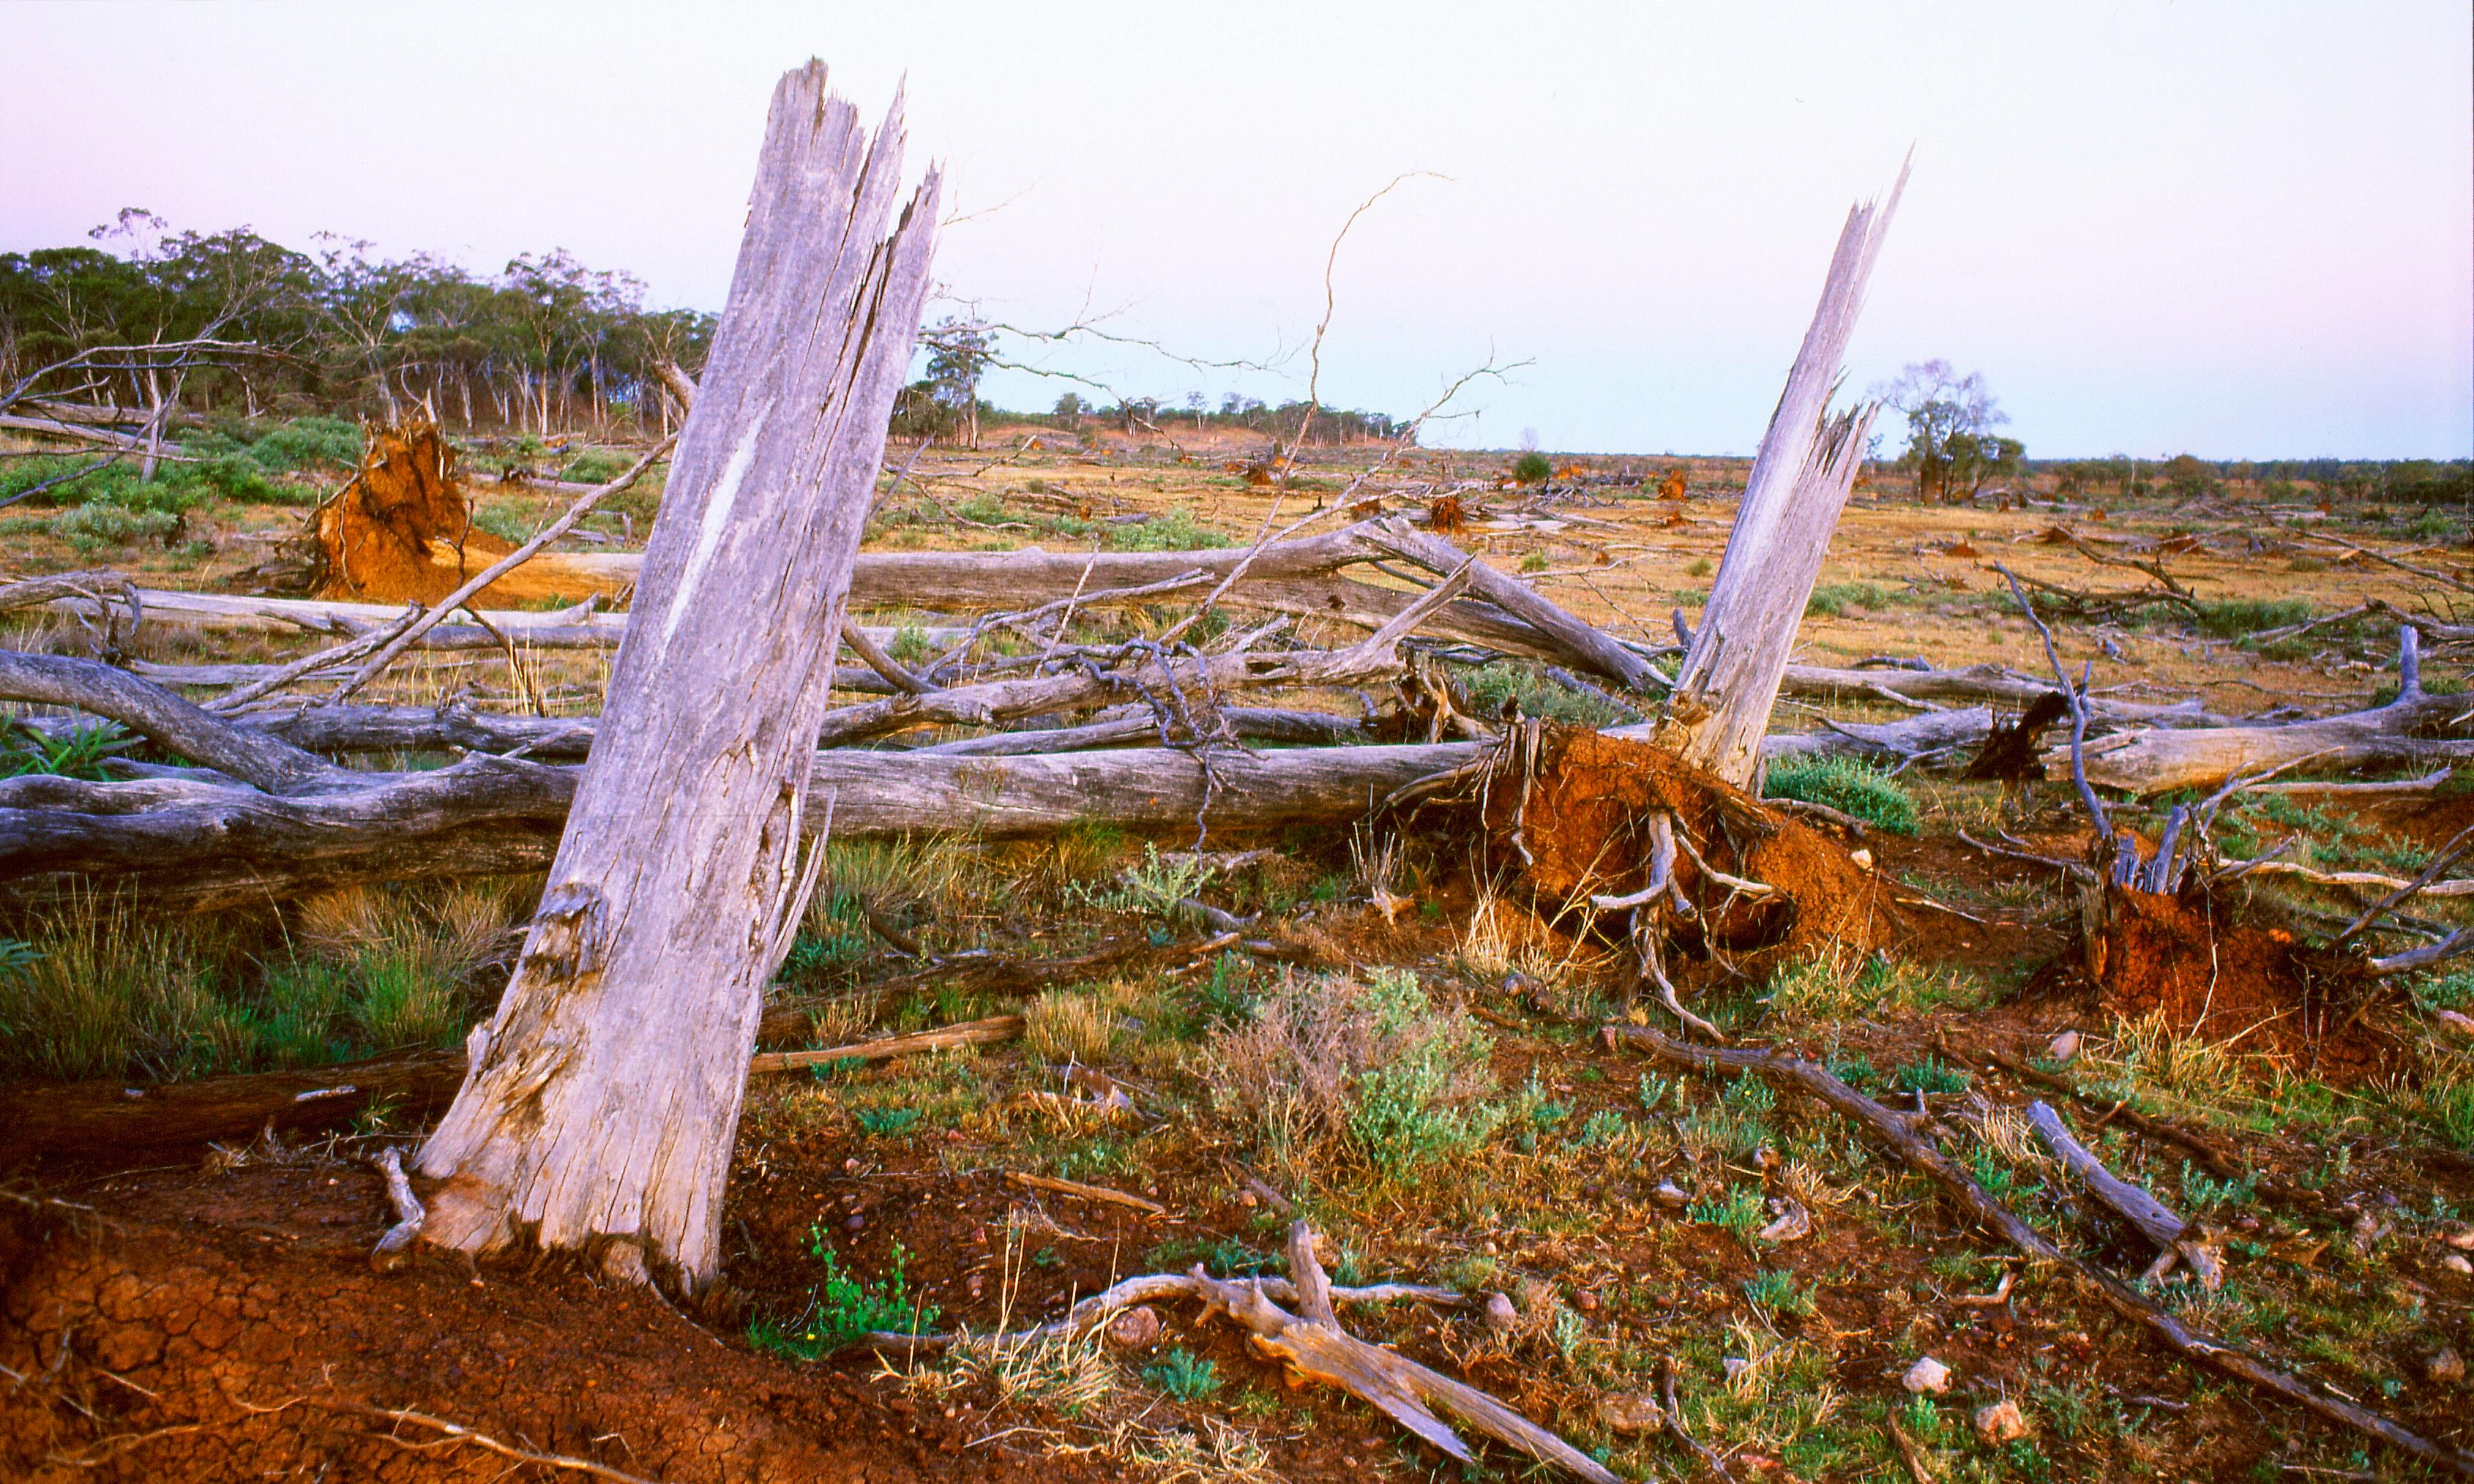 Australia cleared 7.7m hectares of threatened species habitat since introduction of environment act